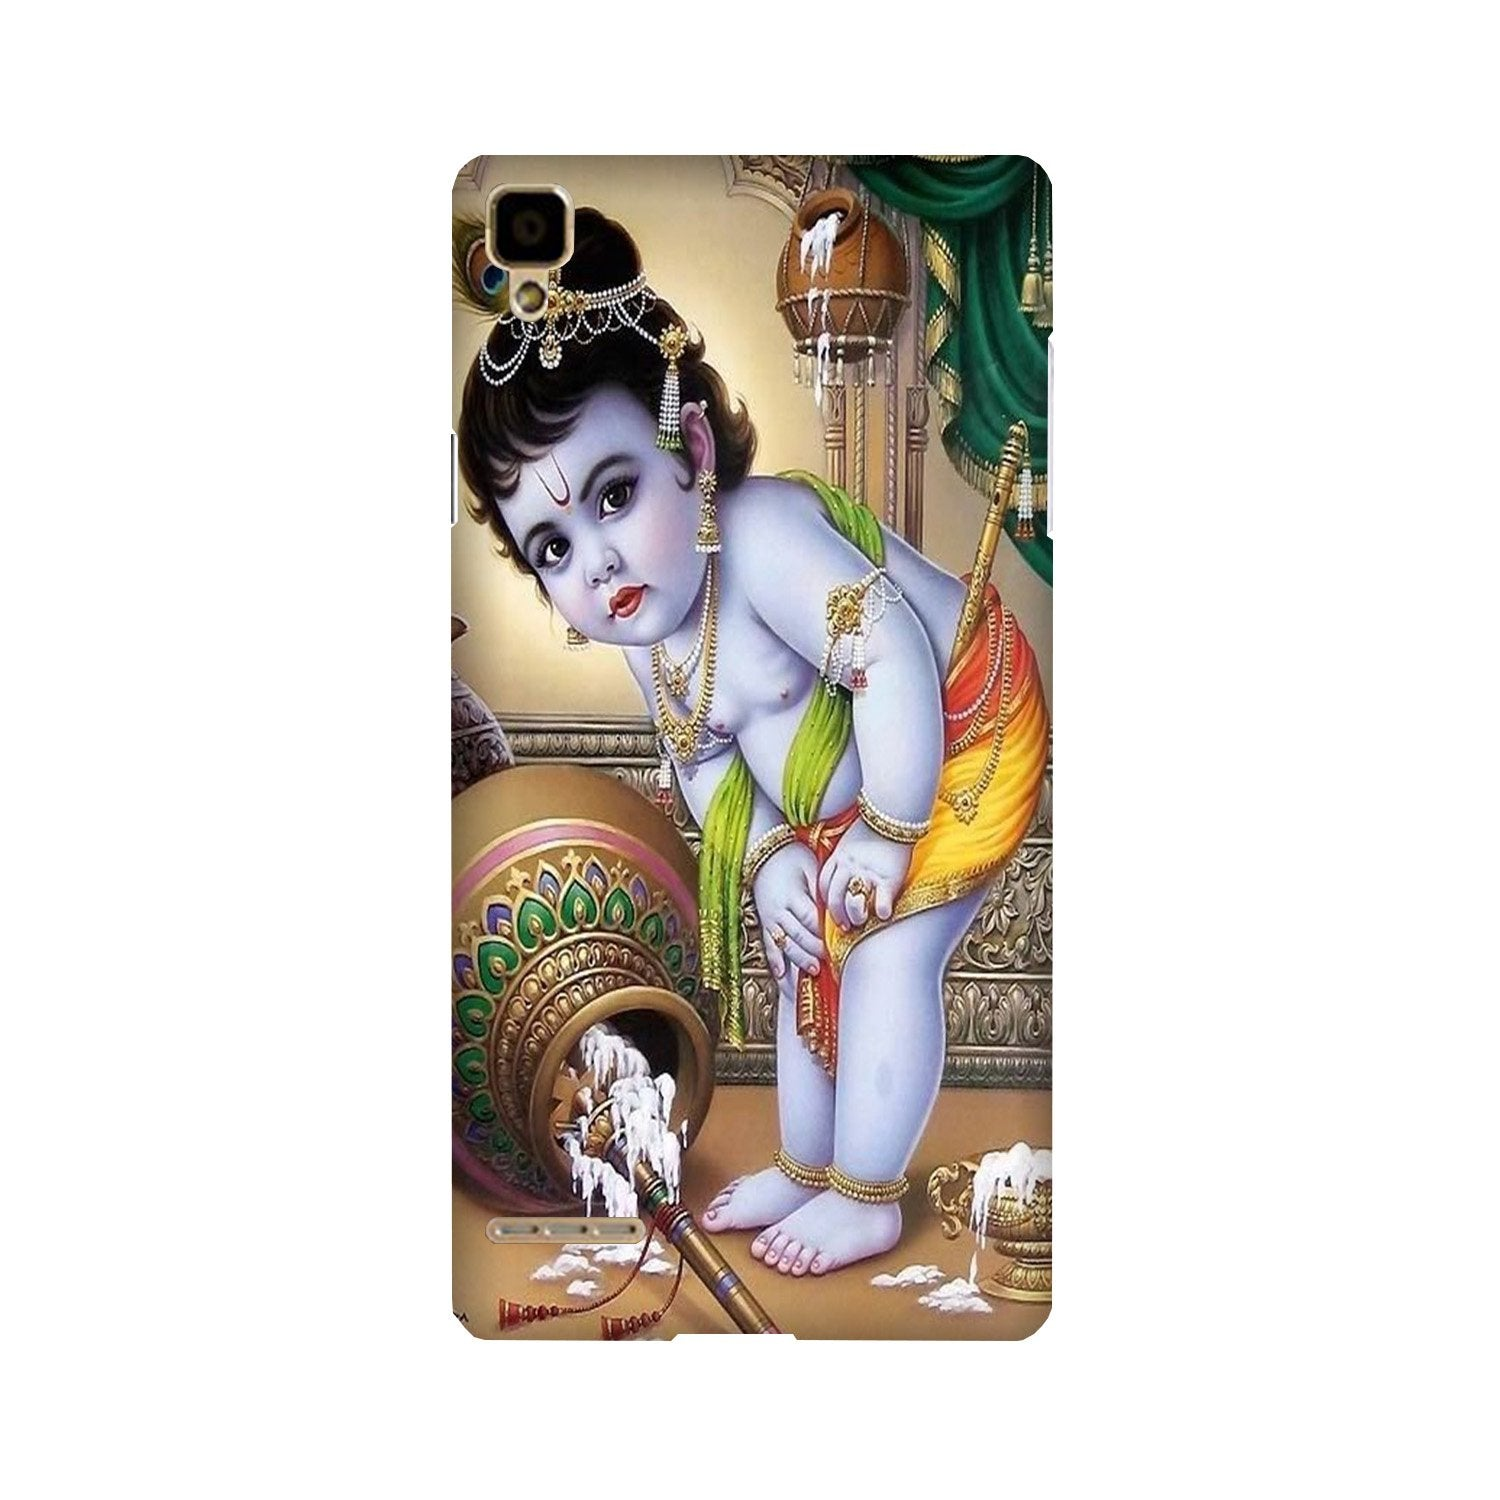 Bal Gopal2 Case for Oppo F1